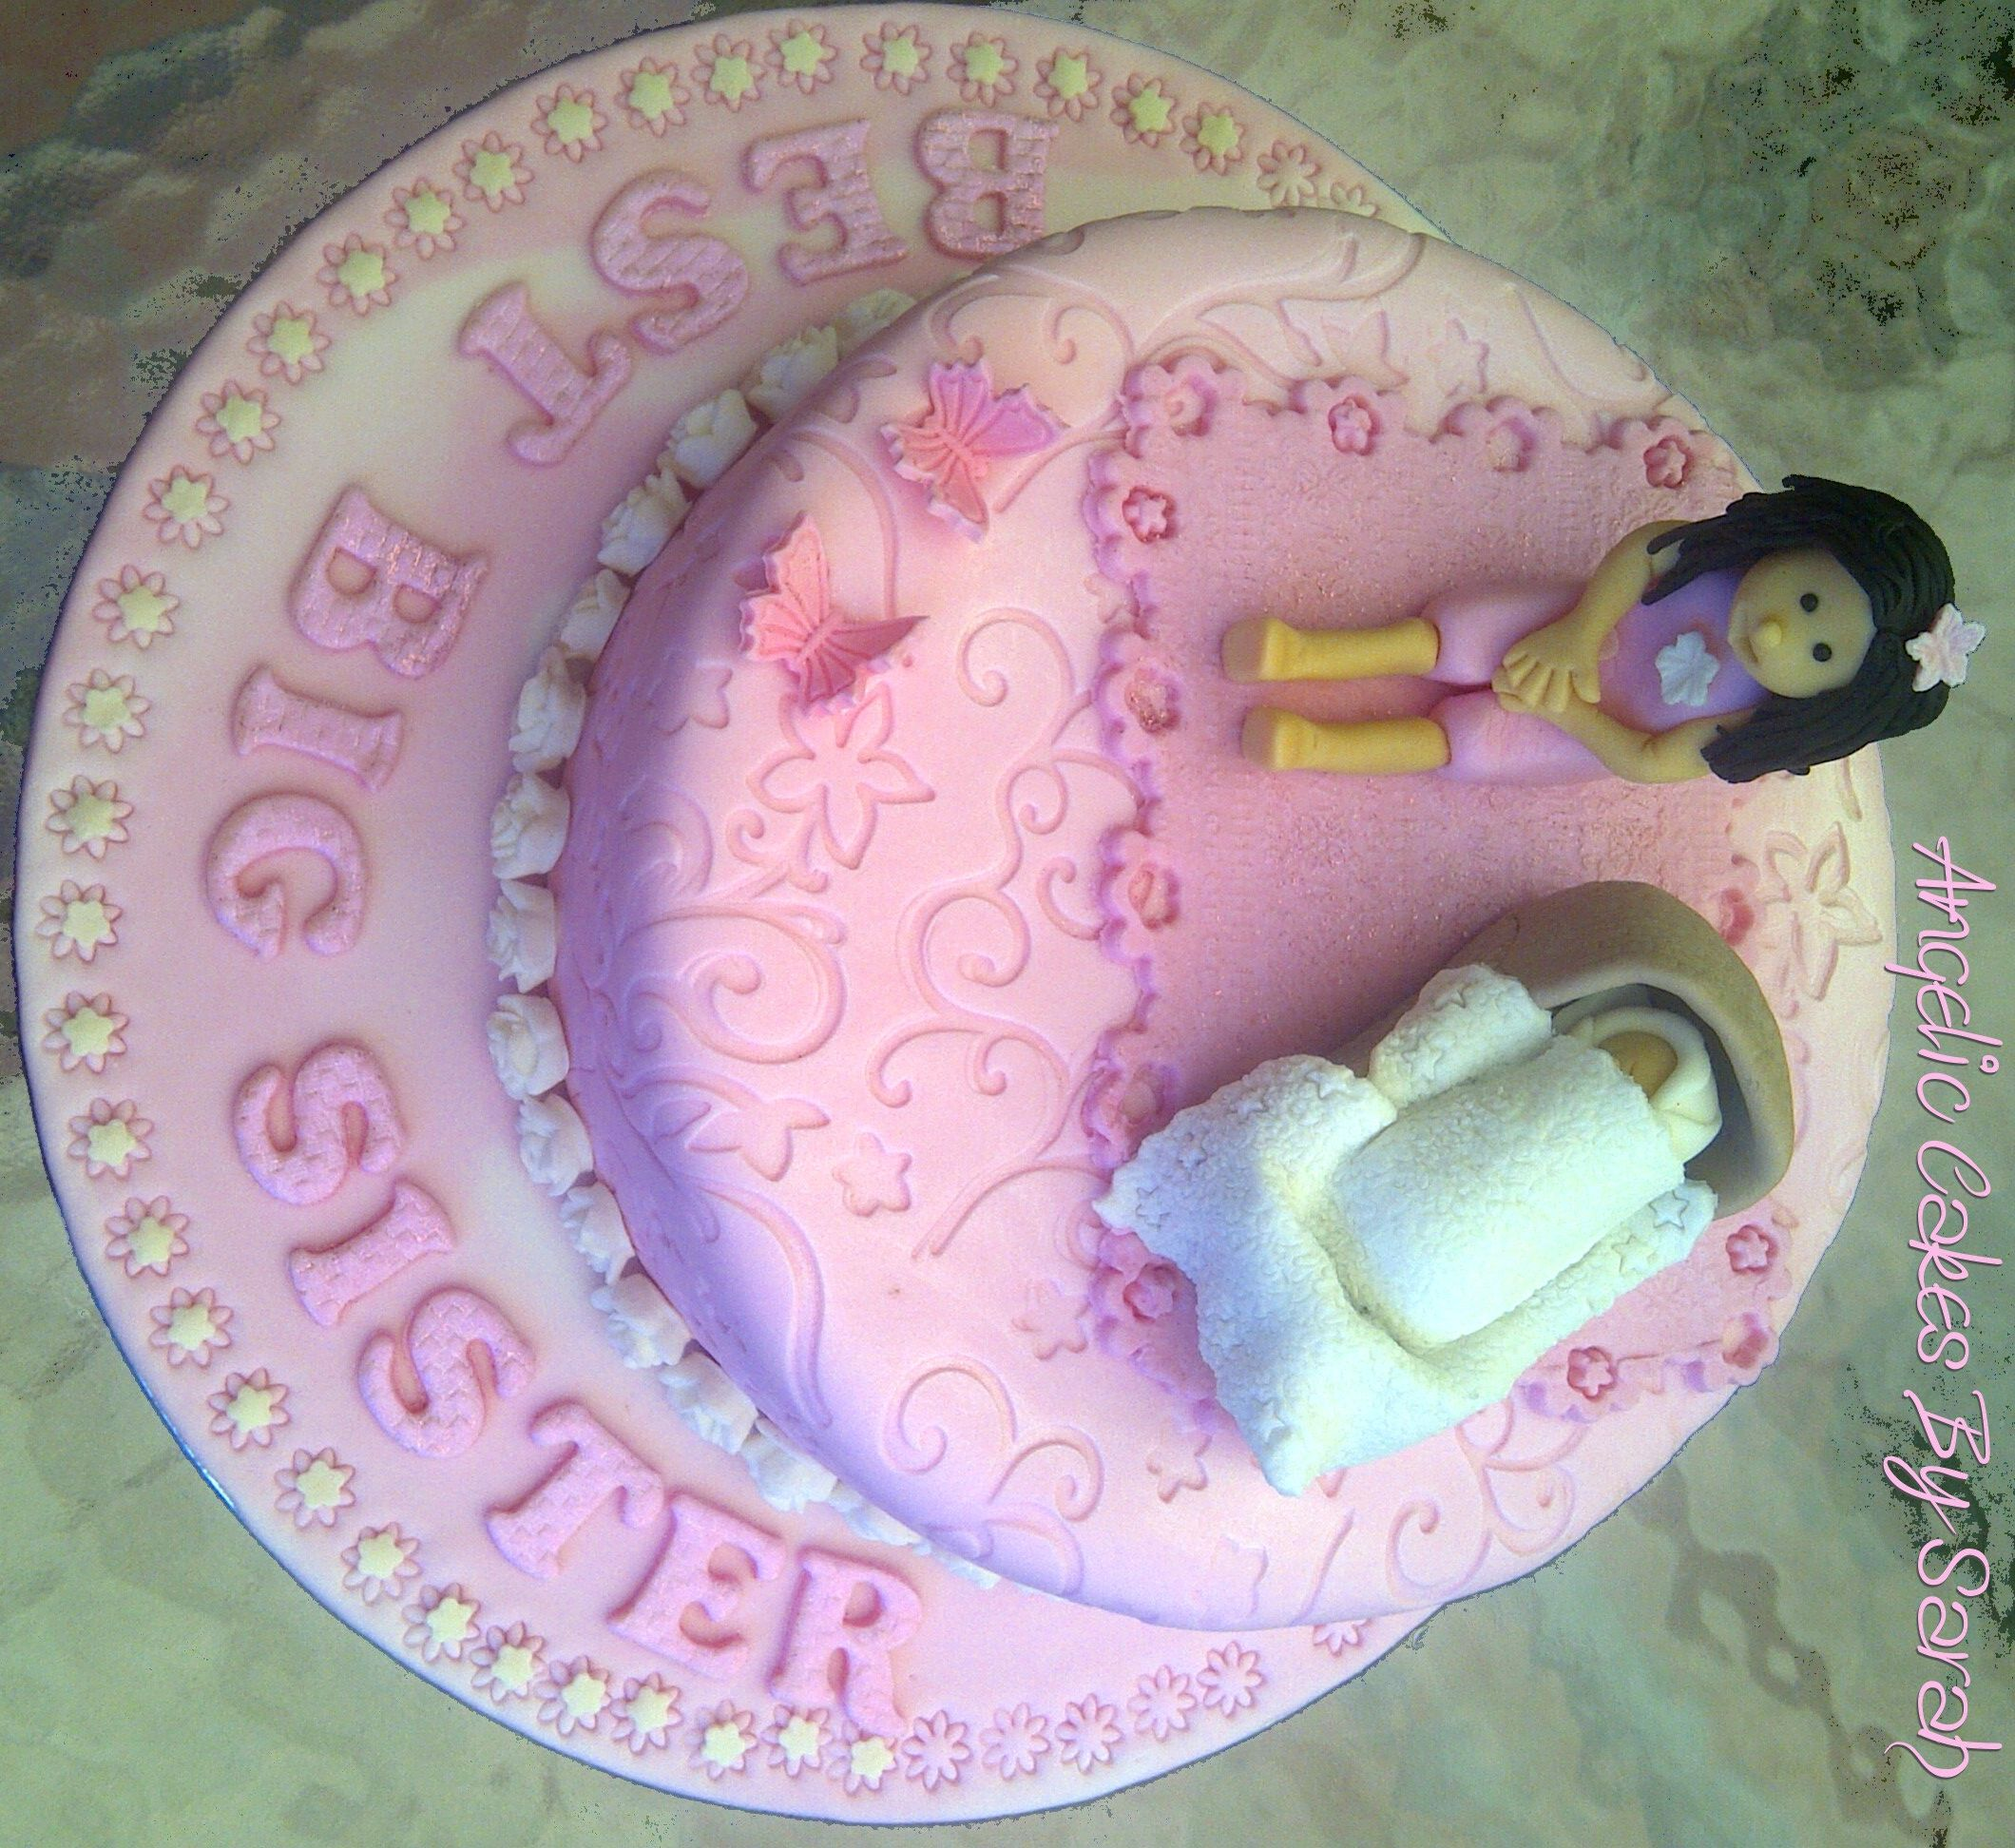 Big Sister Cake Instead Of Having A Baby Shower This Clever